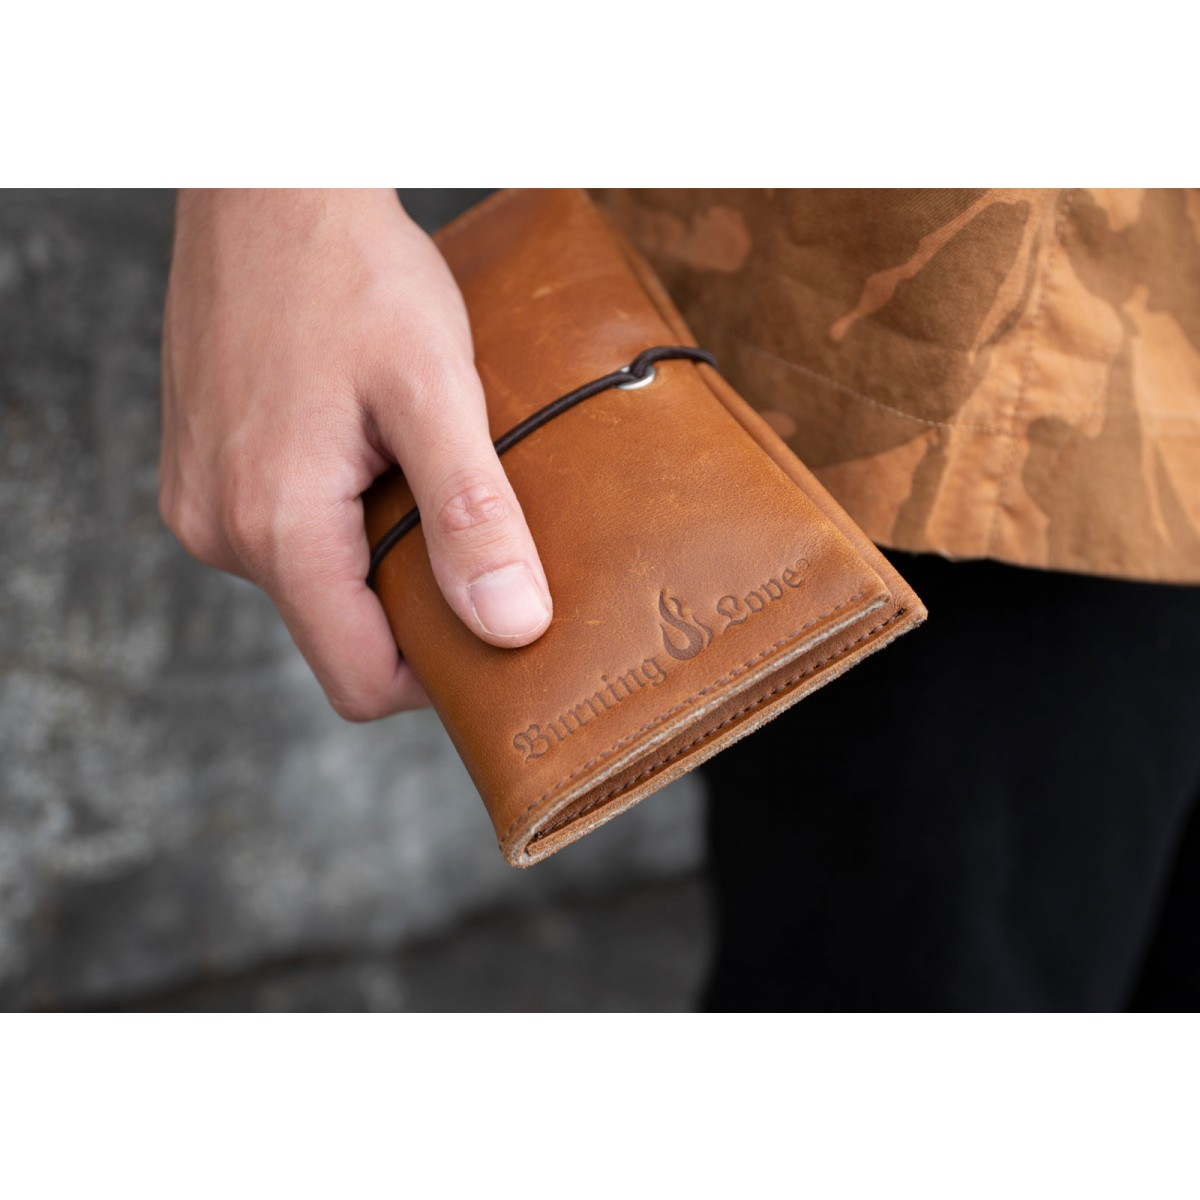 Love Leather Smoking Pouch - Leder Tabaktasche (cognac) - Burning Love